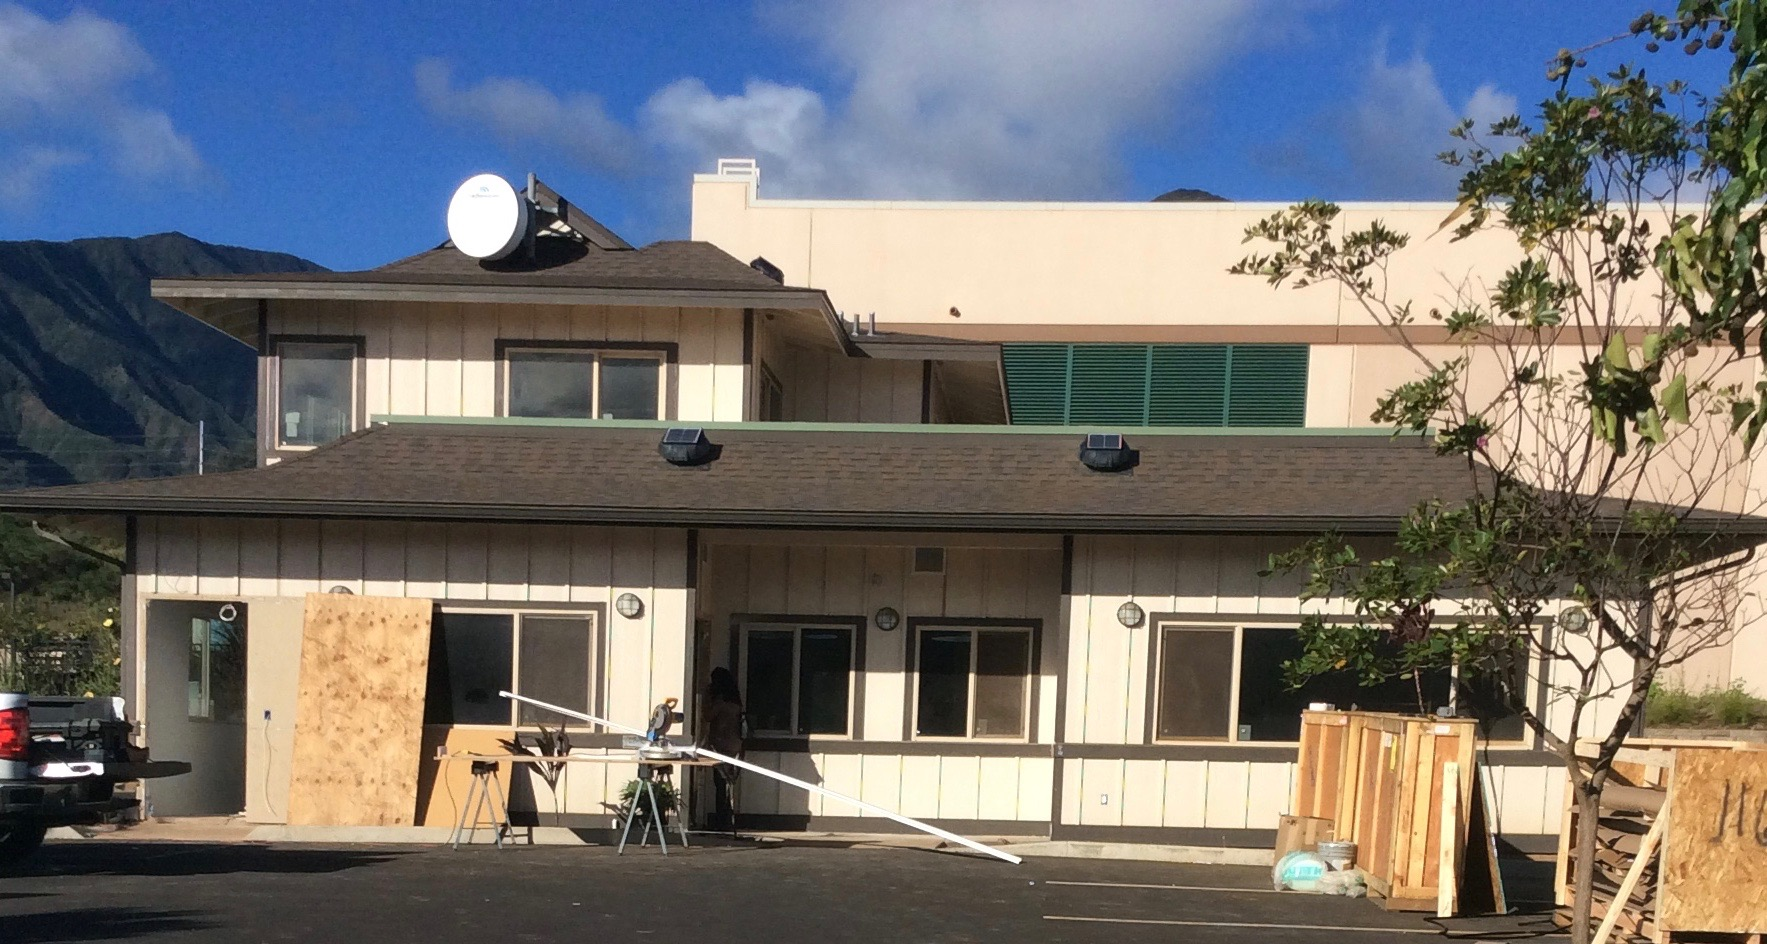 Construction site of Maui Grown Therapies at Maui Lani Village Center in Kahului.